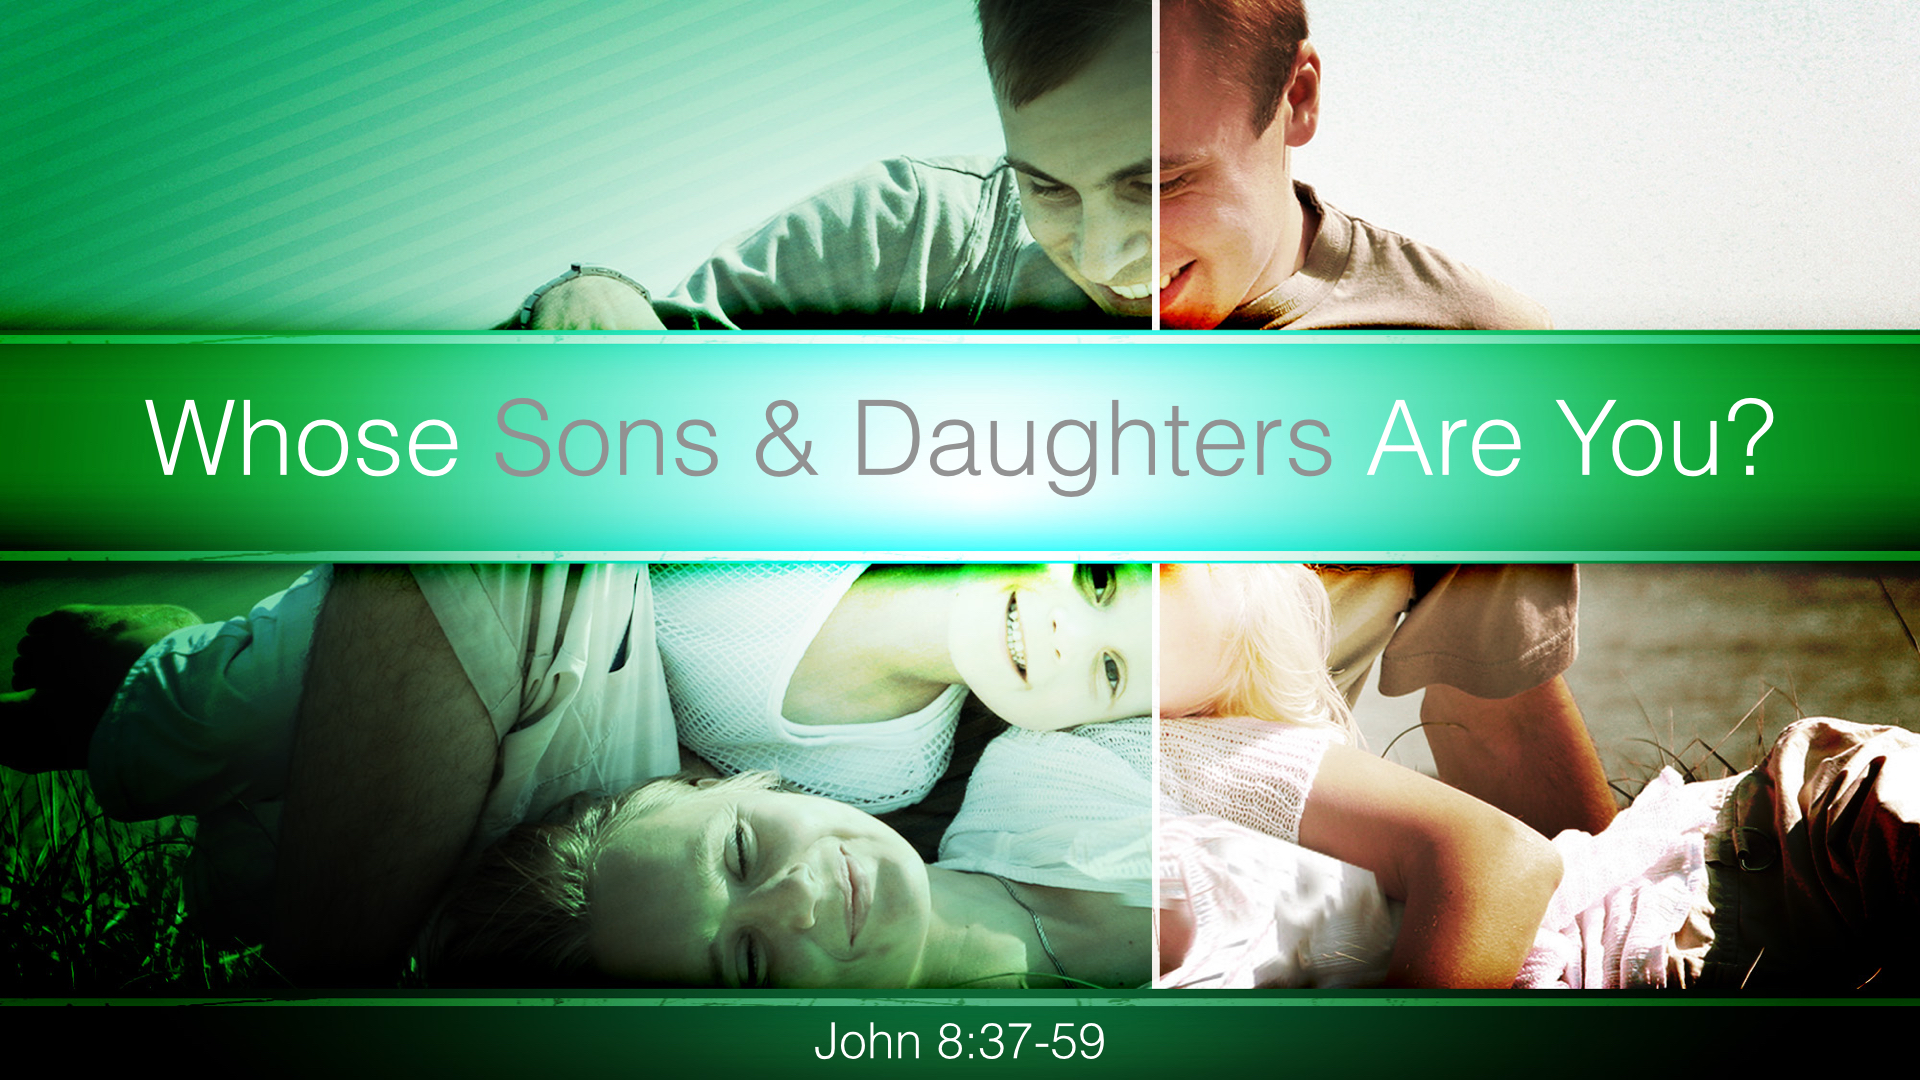 Sons & Daughters.jpg.001